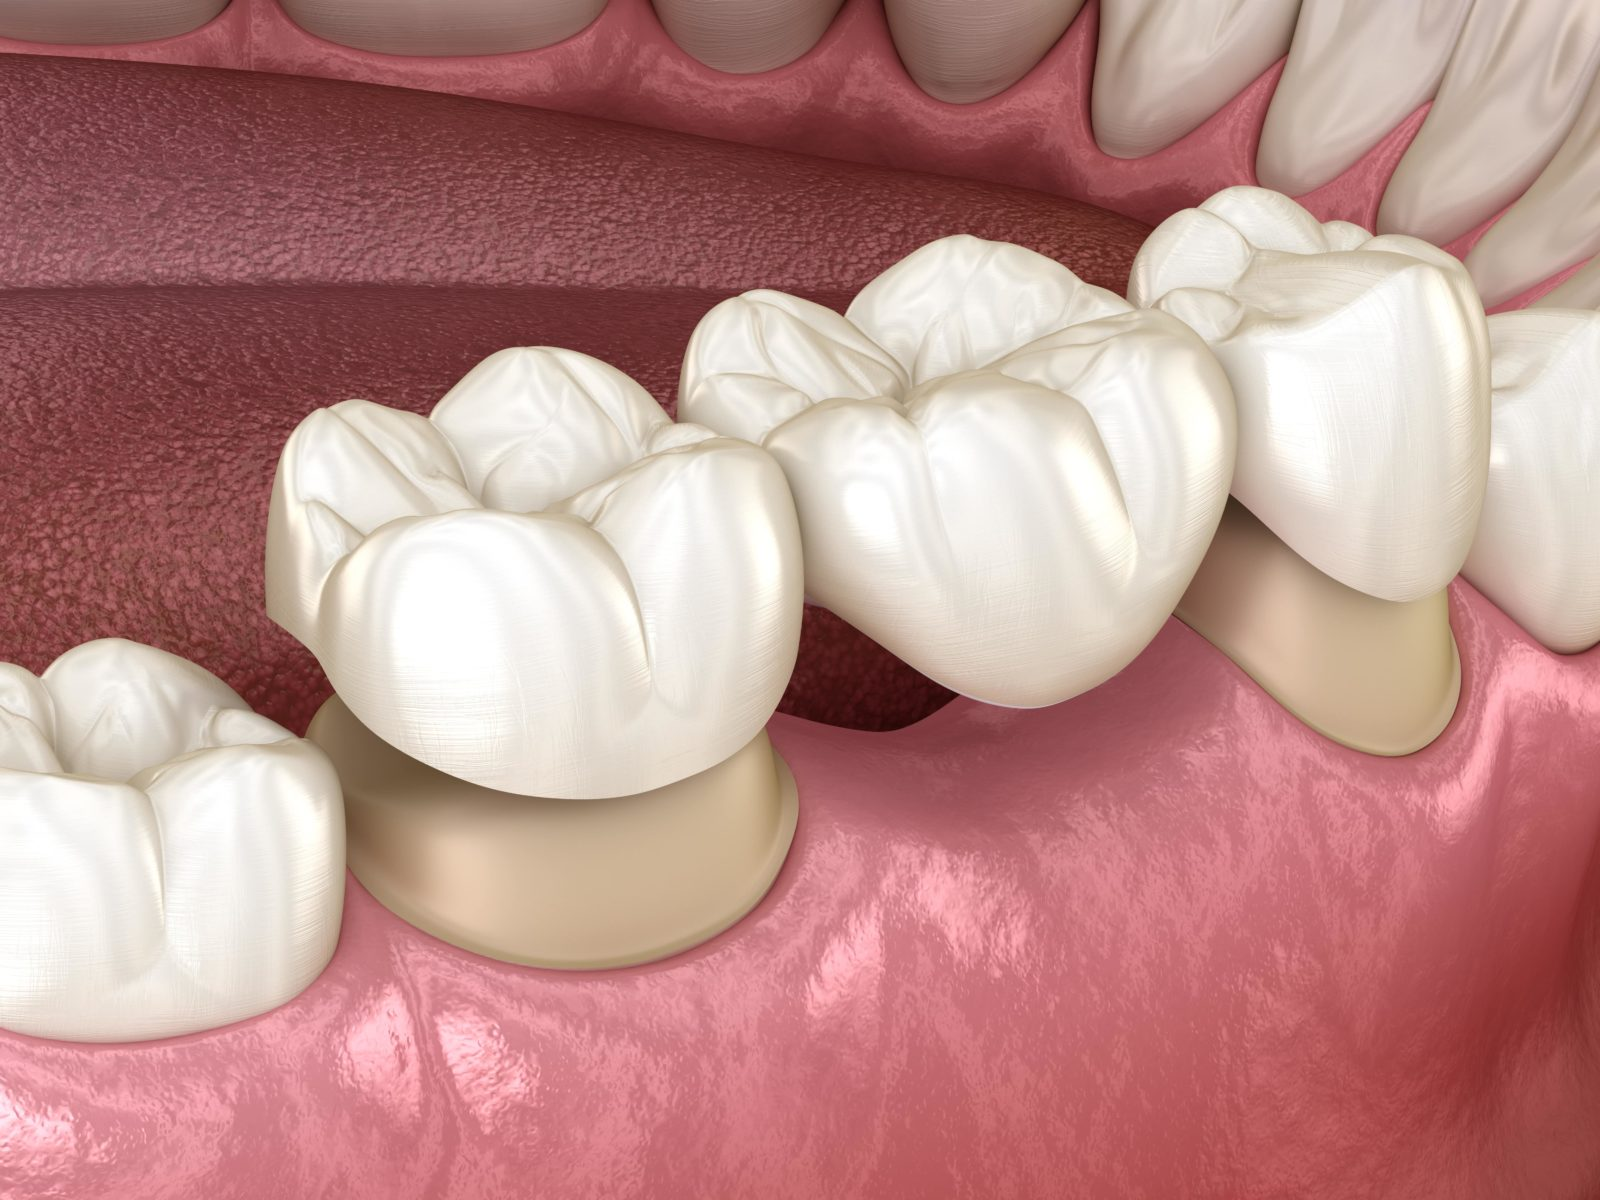 dental bridge being placed to restore missing tooth